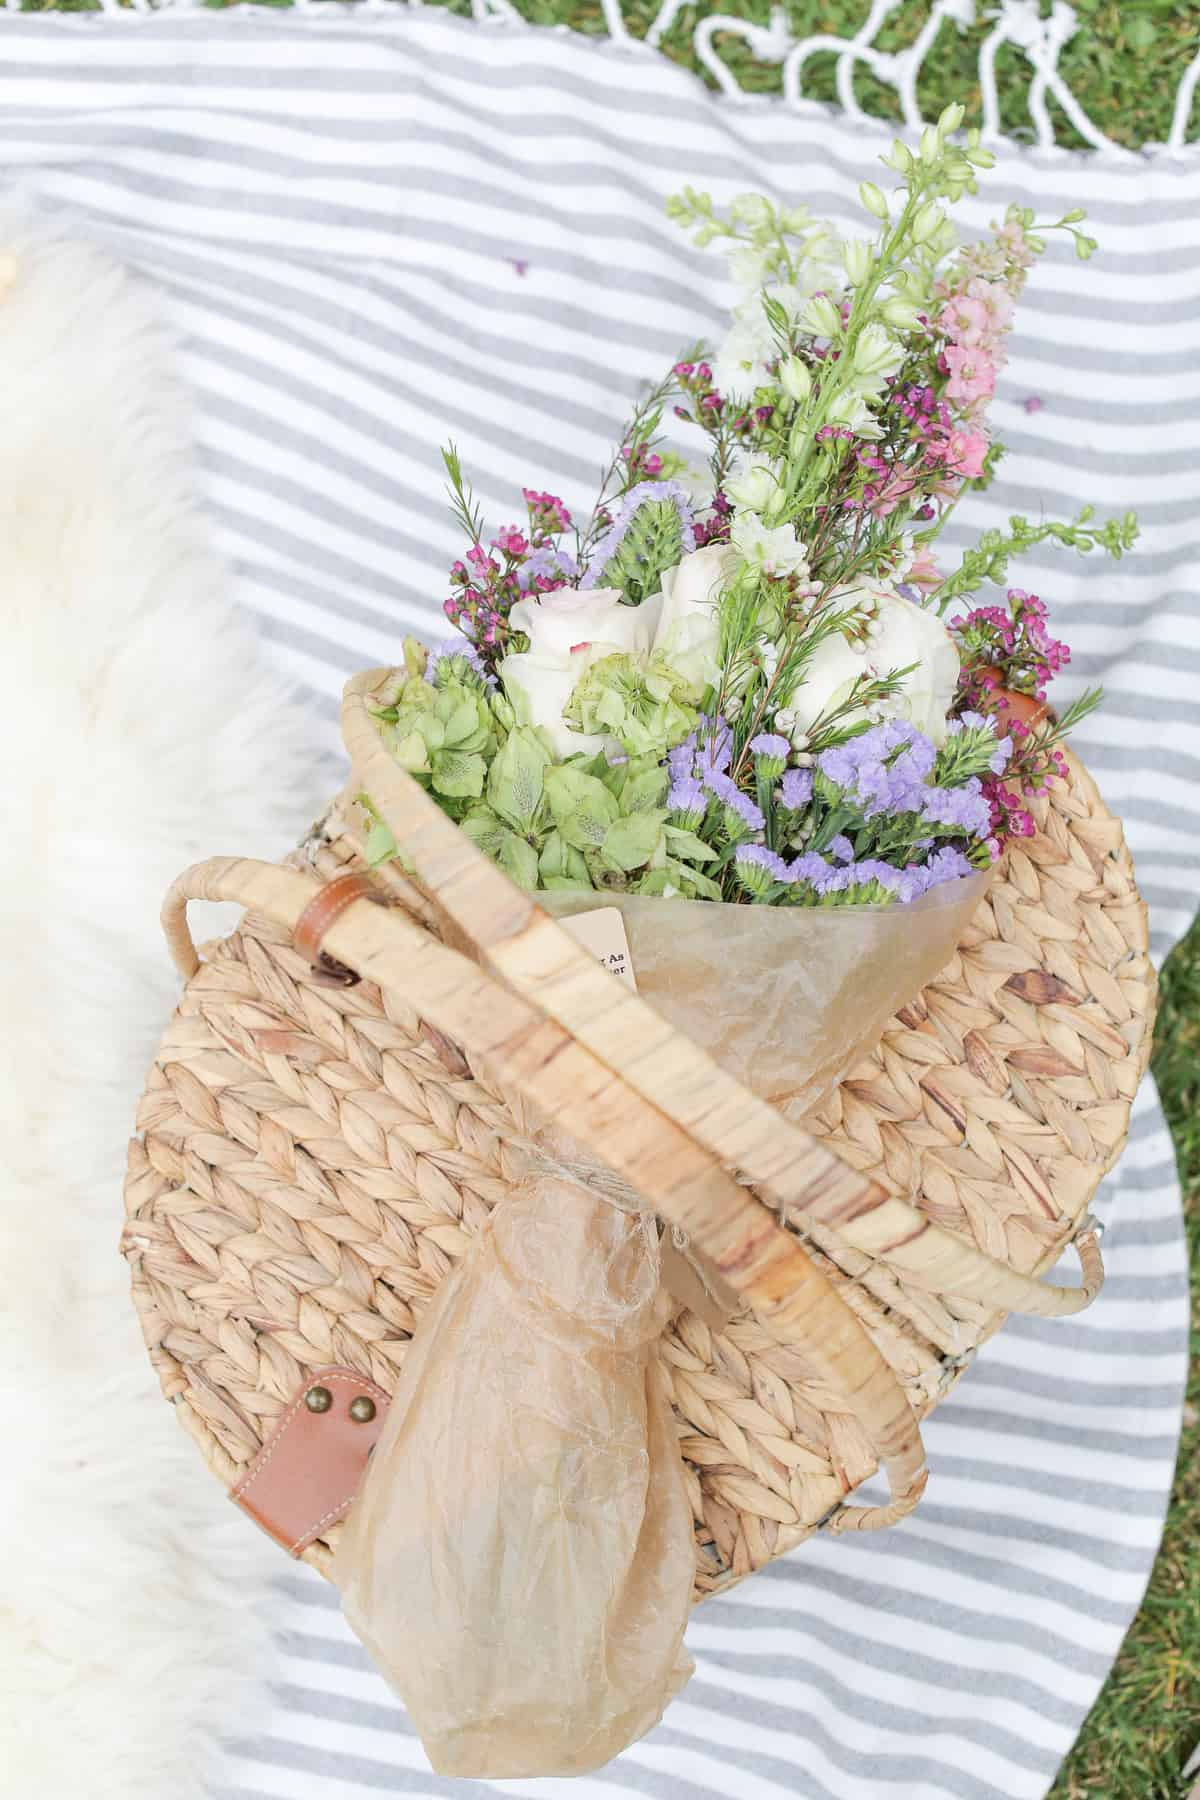 Wicker picnic basket with flowers and a picnic blanket.